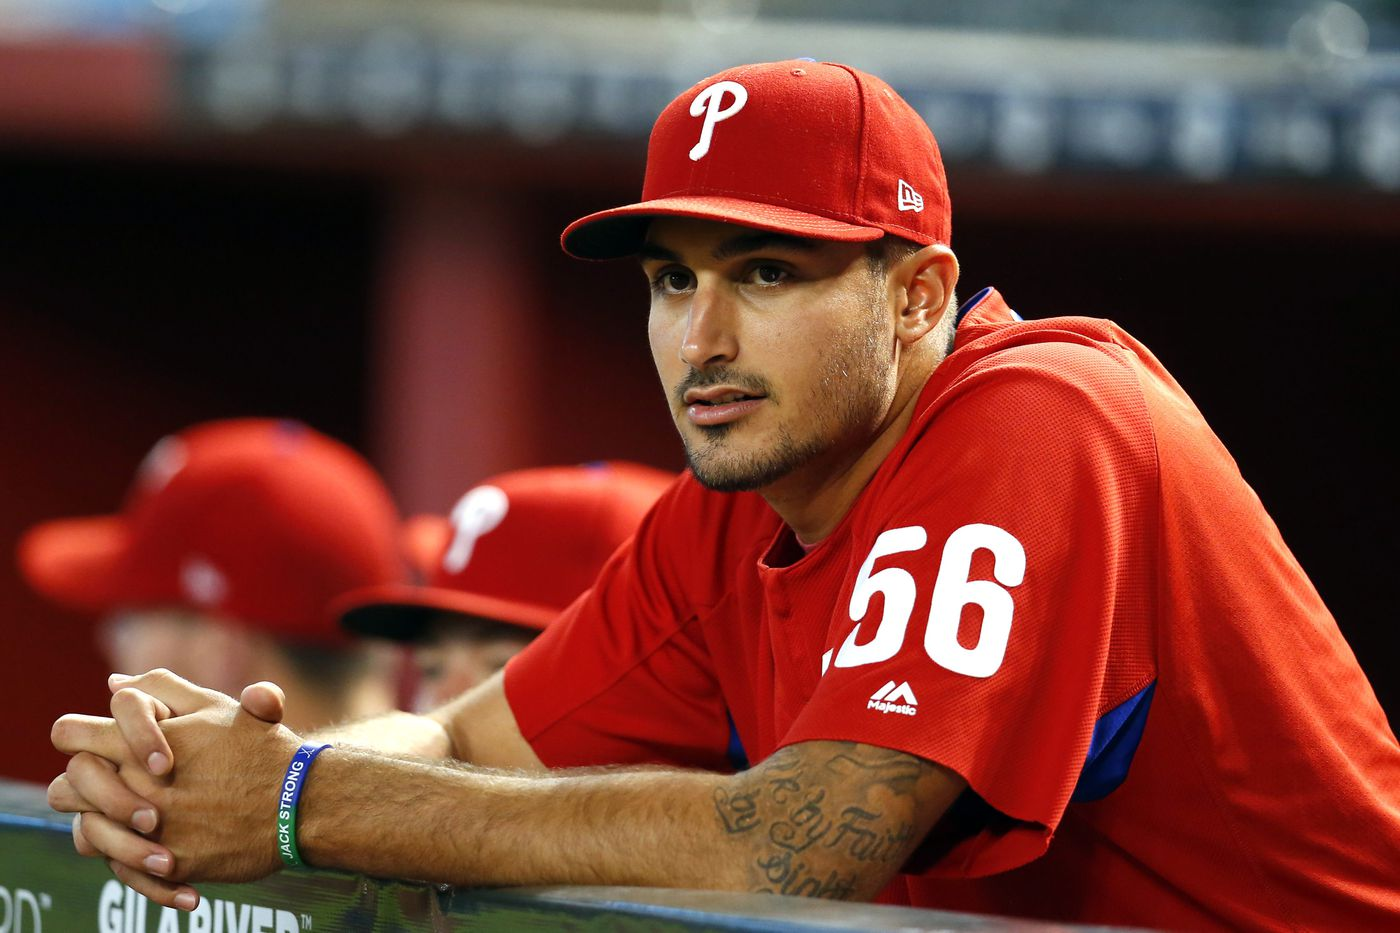 Phillies get creative, temporarily send Zach Eflin down to open roster spot for Justin Bour